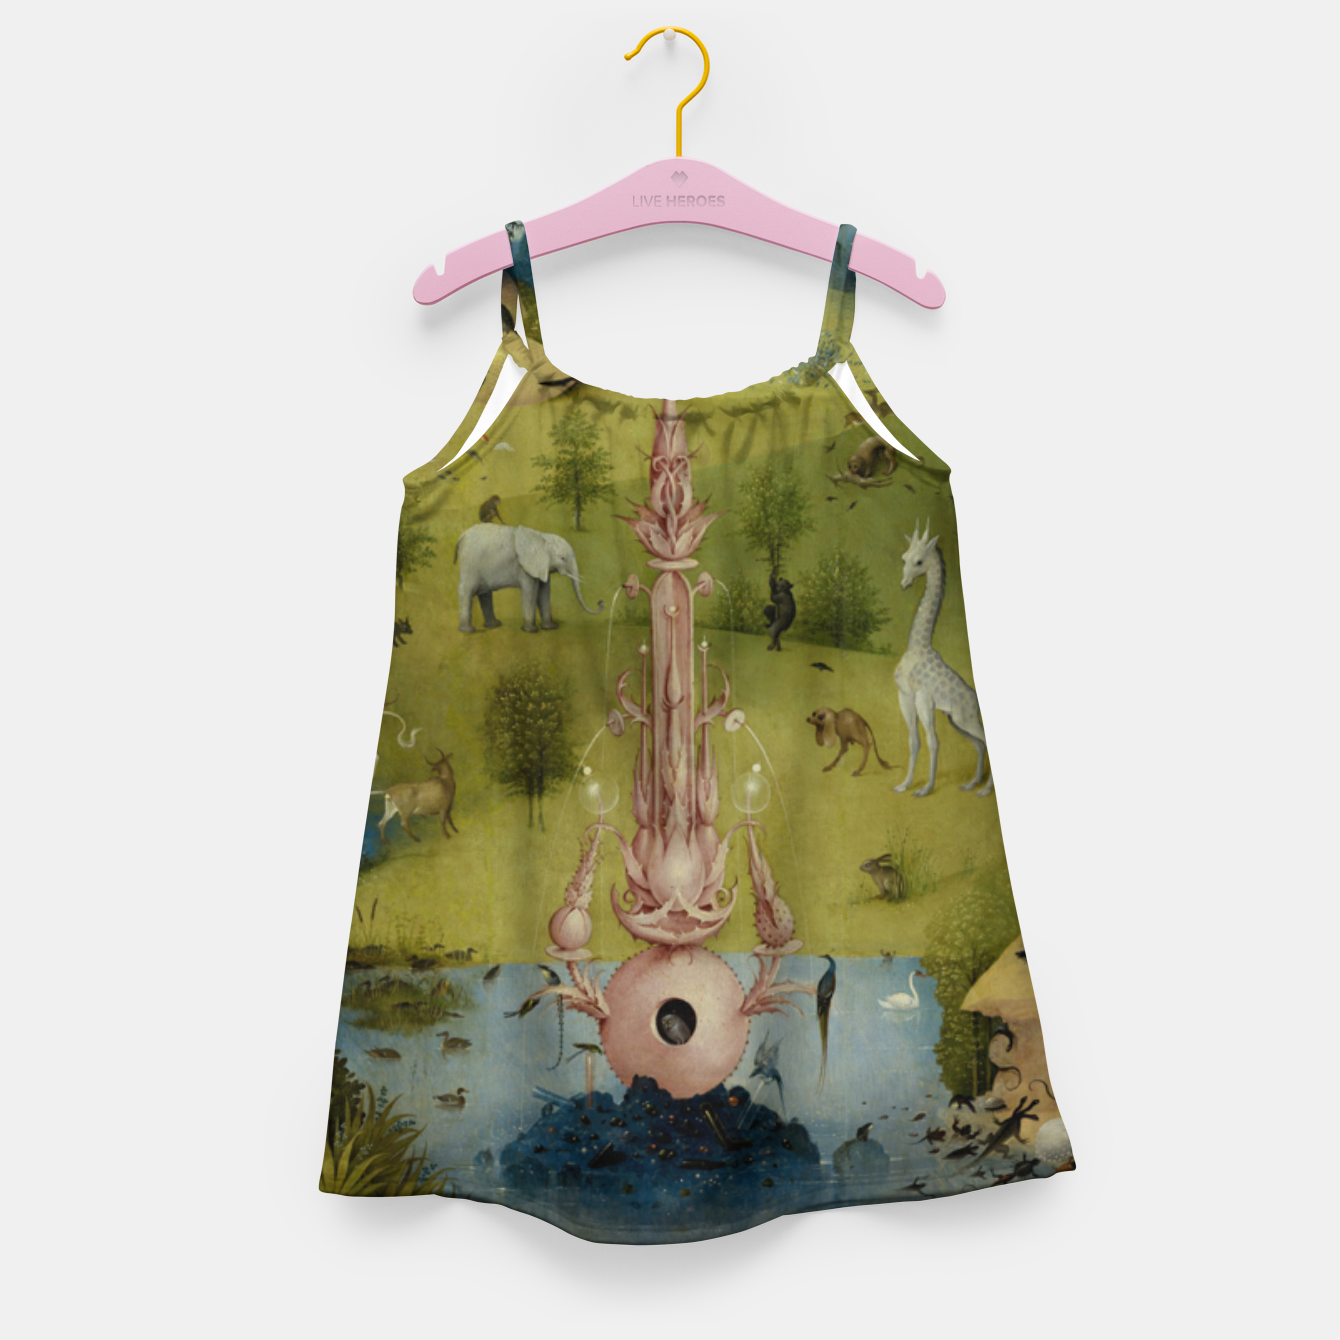 Foto Fashion and Decor items of Hieronymus Bosch painting, Eden from the triptych Garden of Earthly Delights Girl's dress - Live Heroes